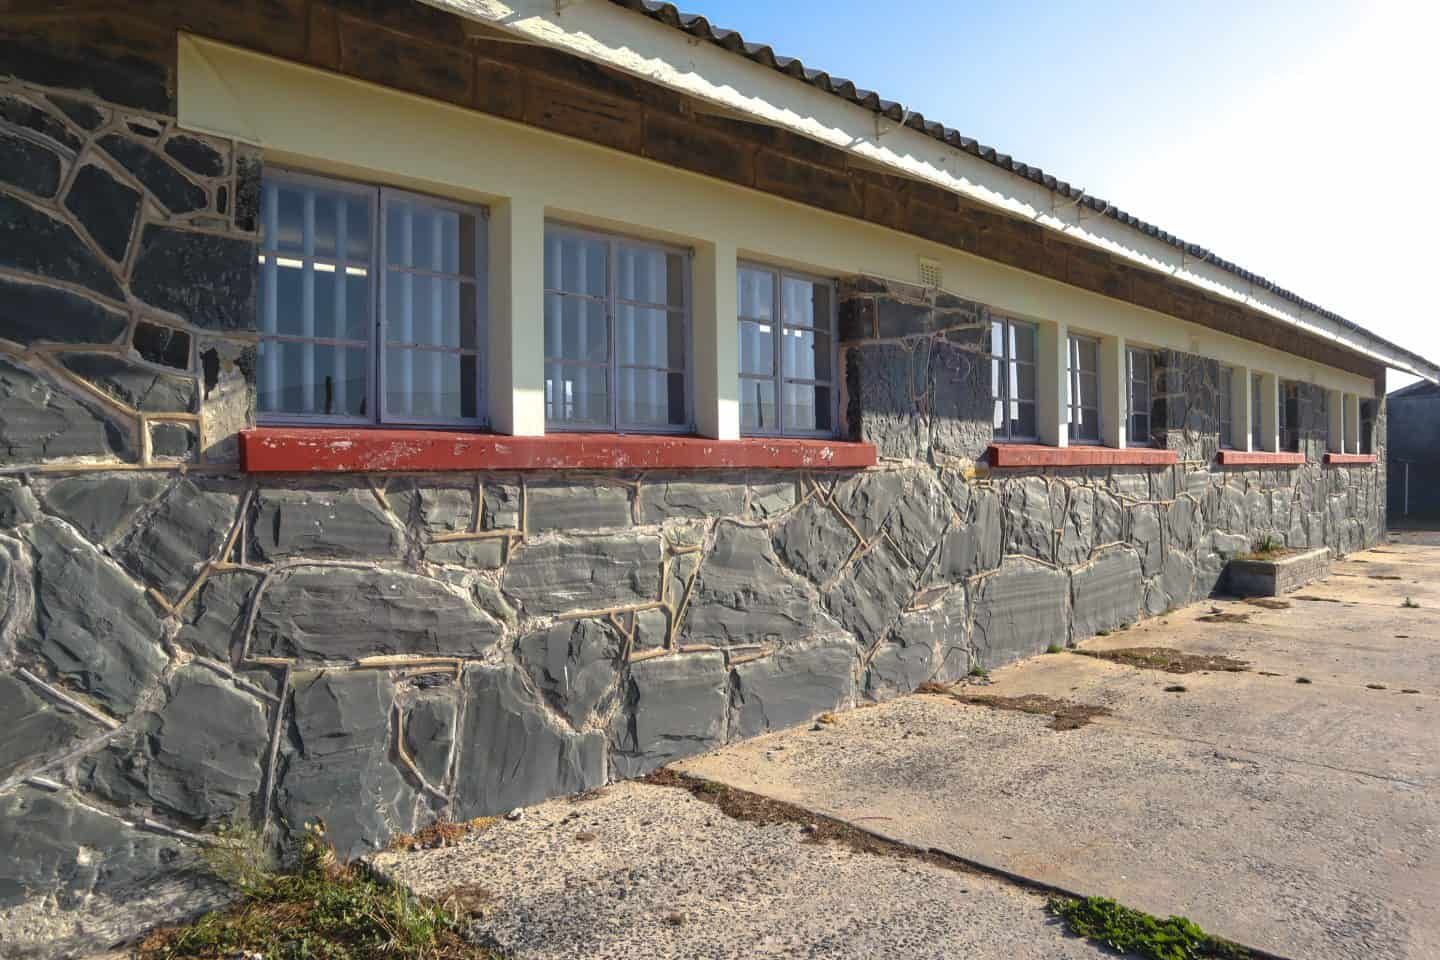 The exterior of the prison where Nelson Mandela was kept on Robben Island